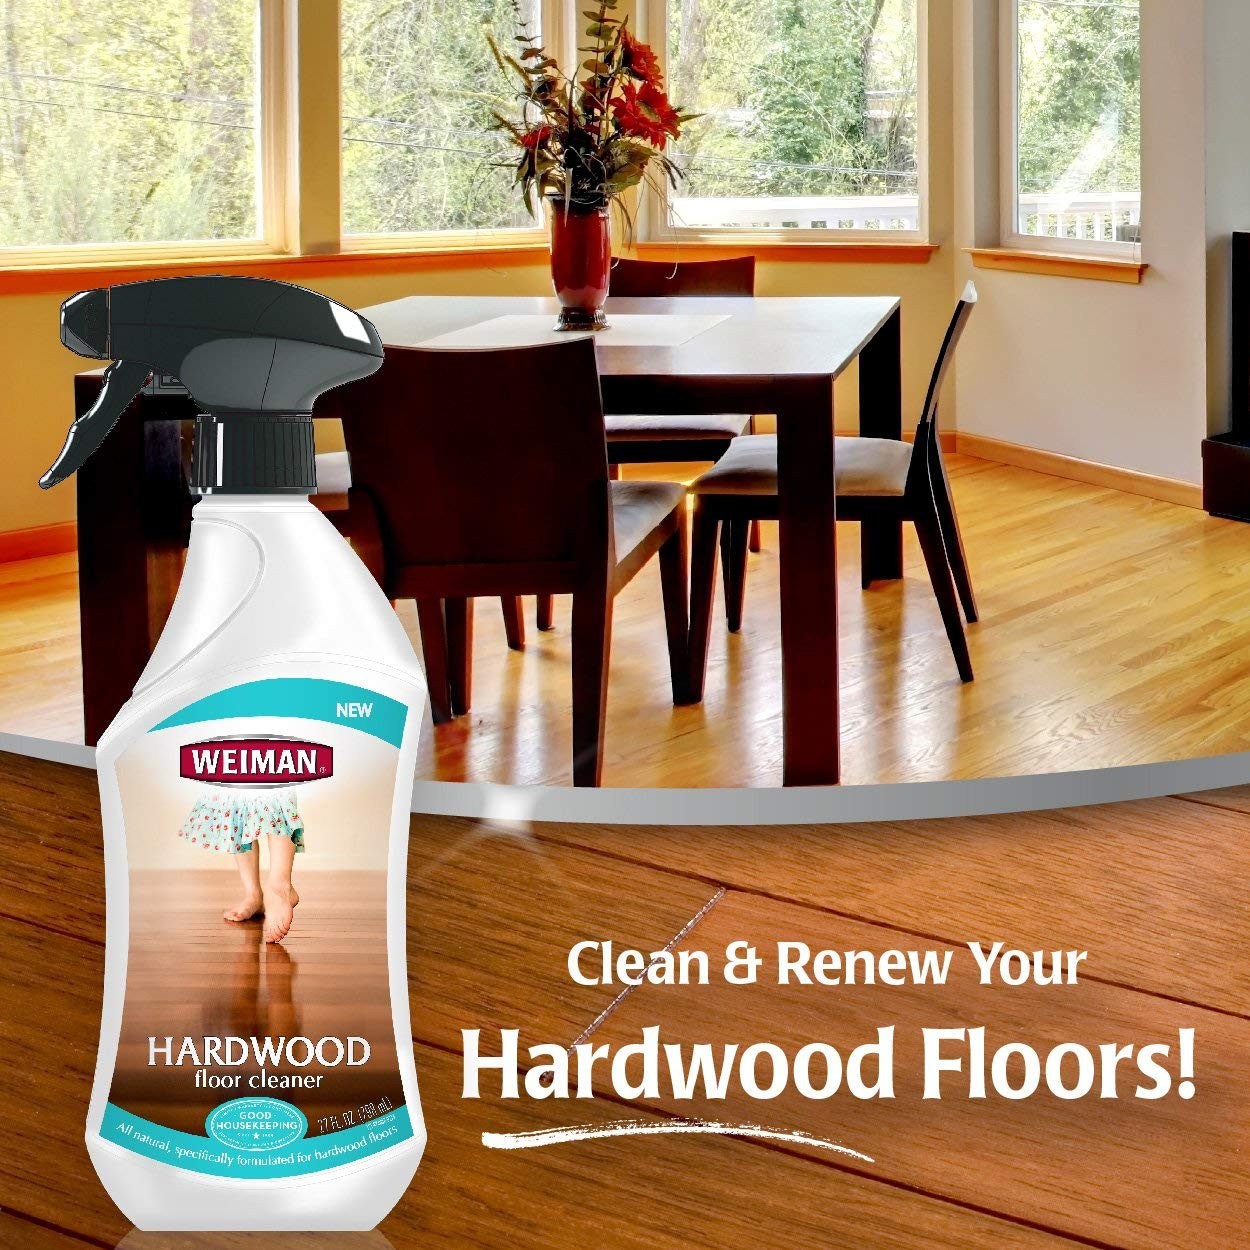 dark hardwood floors for sale of amazon com weiman hardwood floor cleaner surface safe no harsh intended for amazon com weiman hardwood floor cleaner surface safe no harsh scent safe for use around kids and pets residue free 27 oz trigger home kitchen